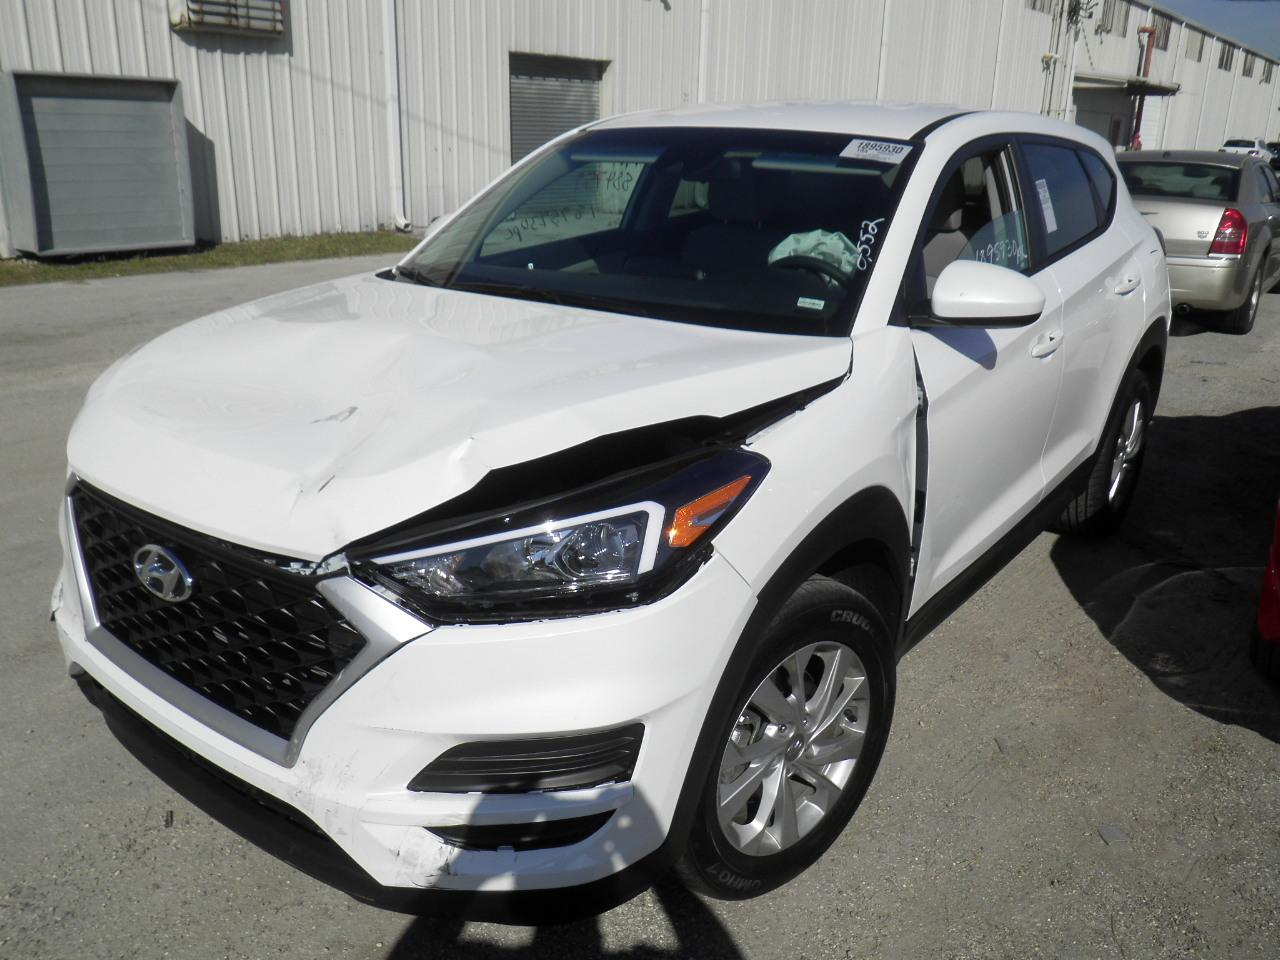 Tucson Car Auction >> 2019 Hyundai Tucson Mpv Used Car Auction Car Export